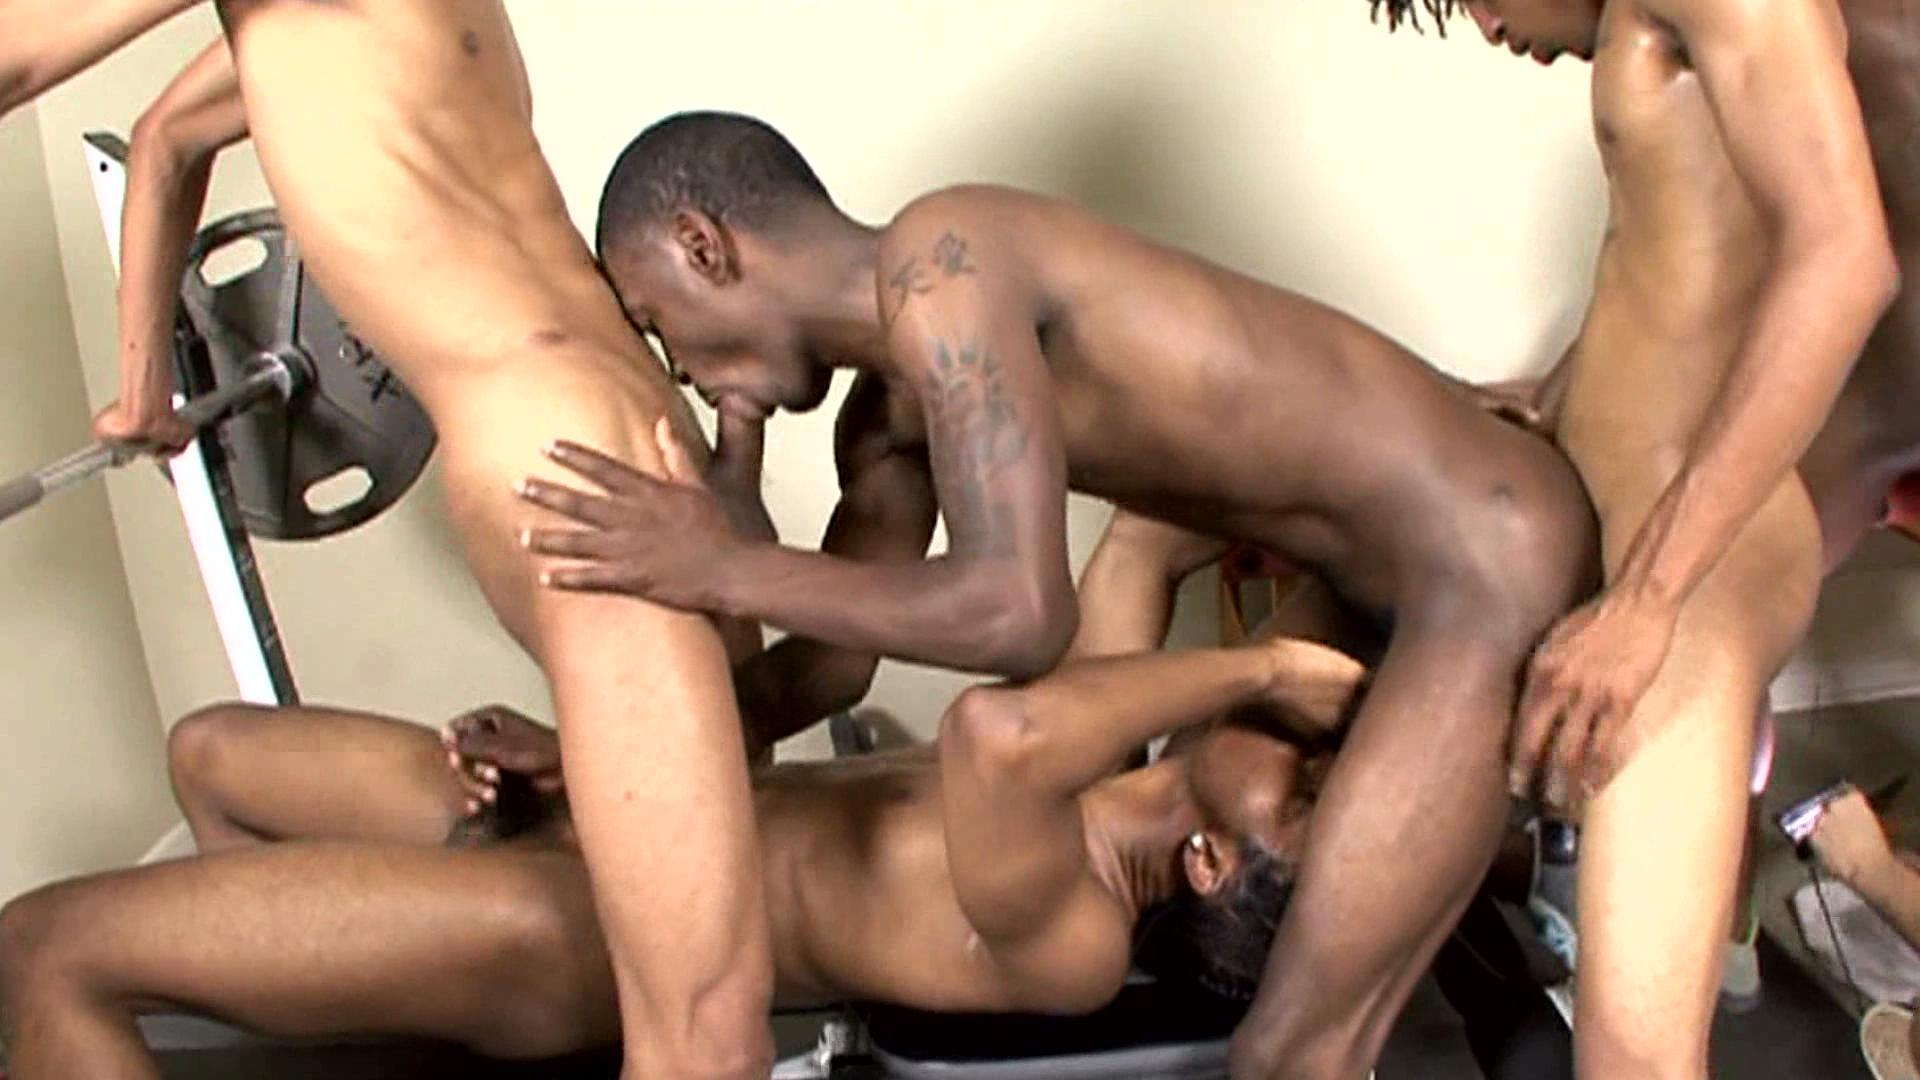 opinion very interesting gangbang gay anal cum creampie join told